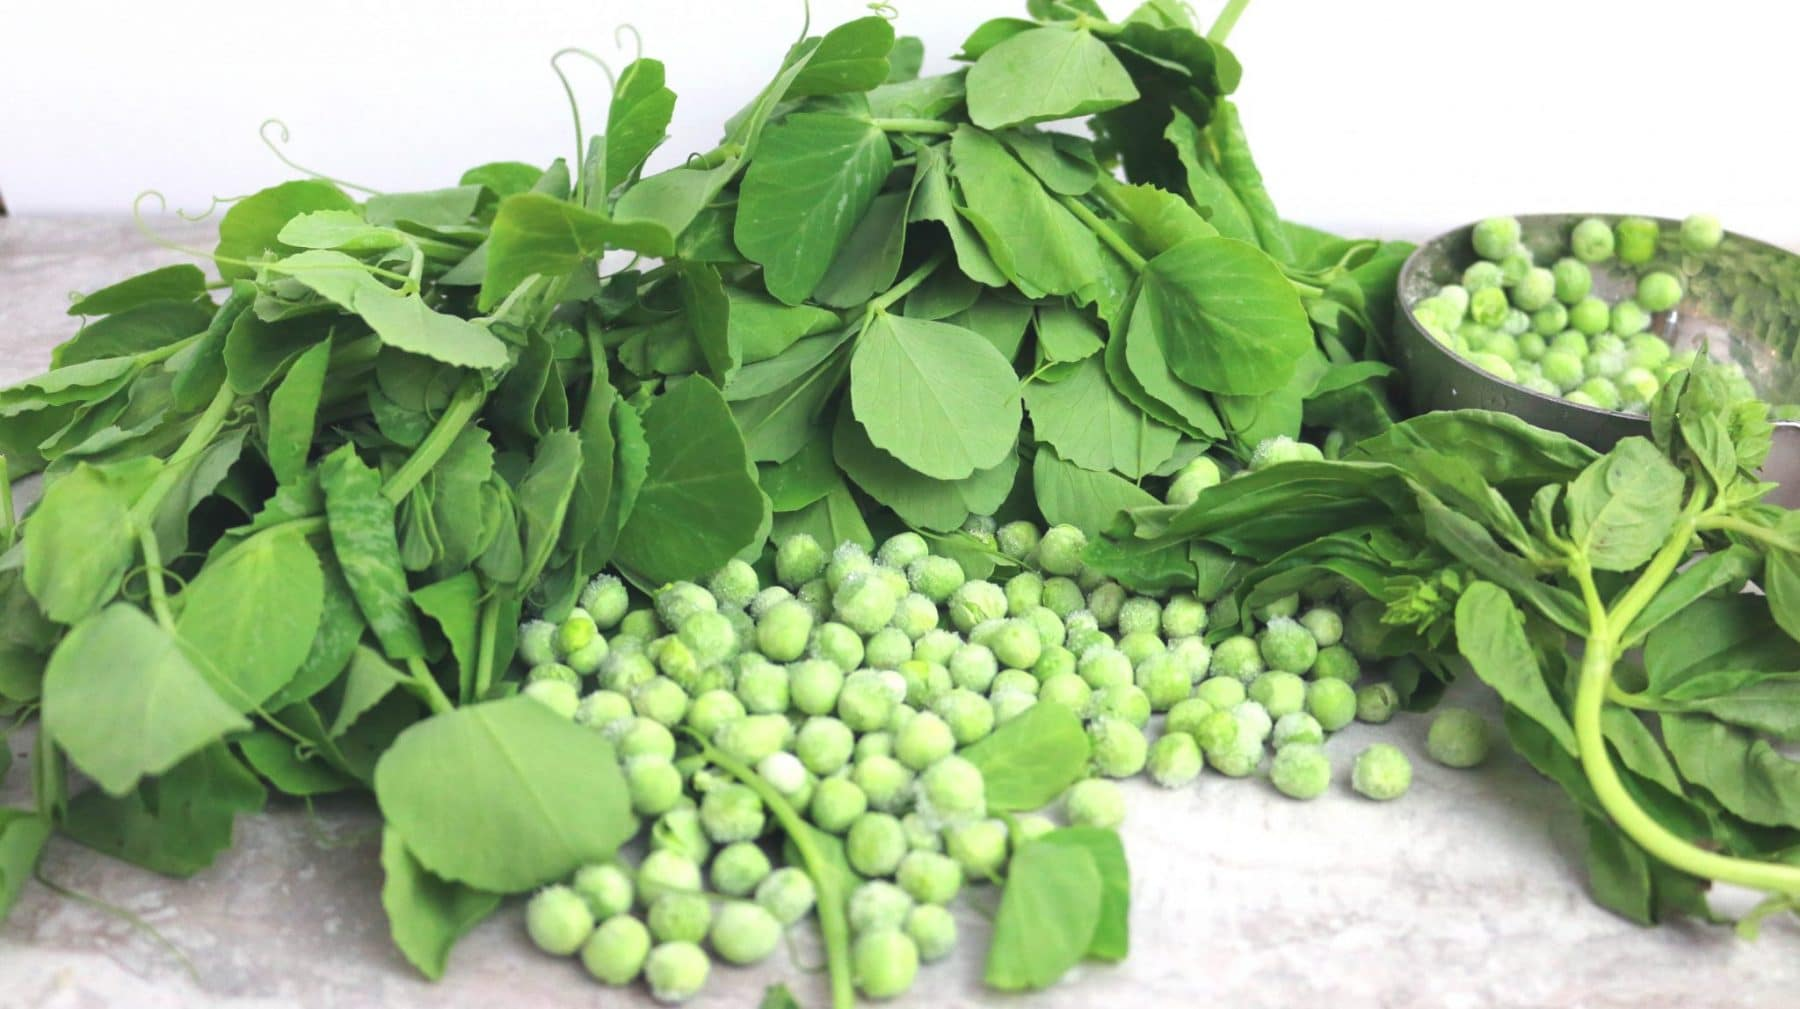 where do pea shoots ocme from